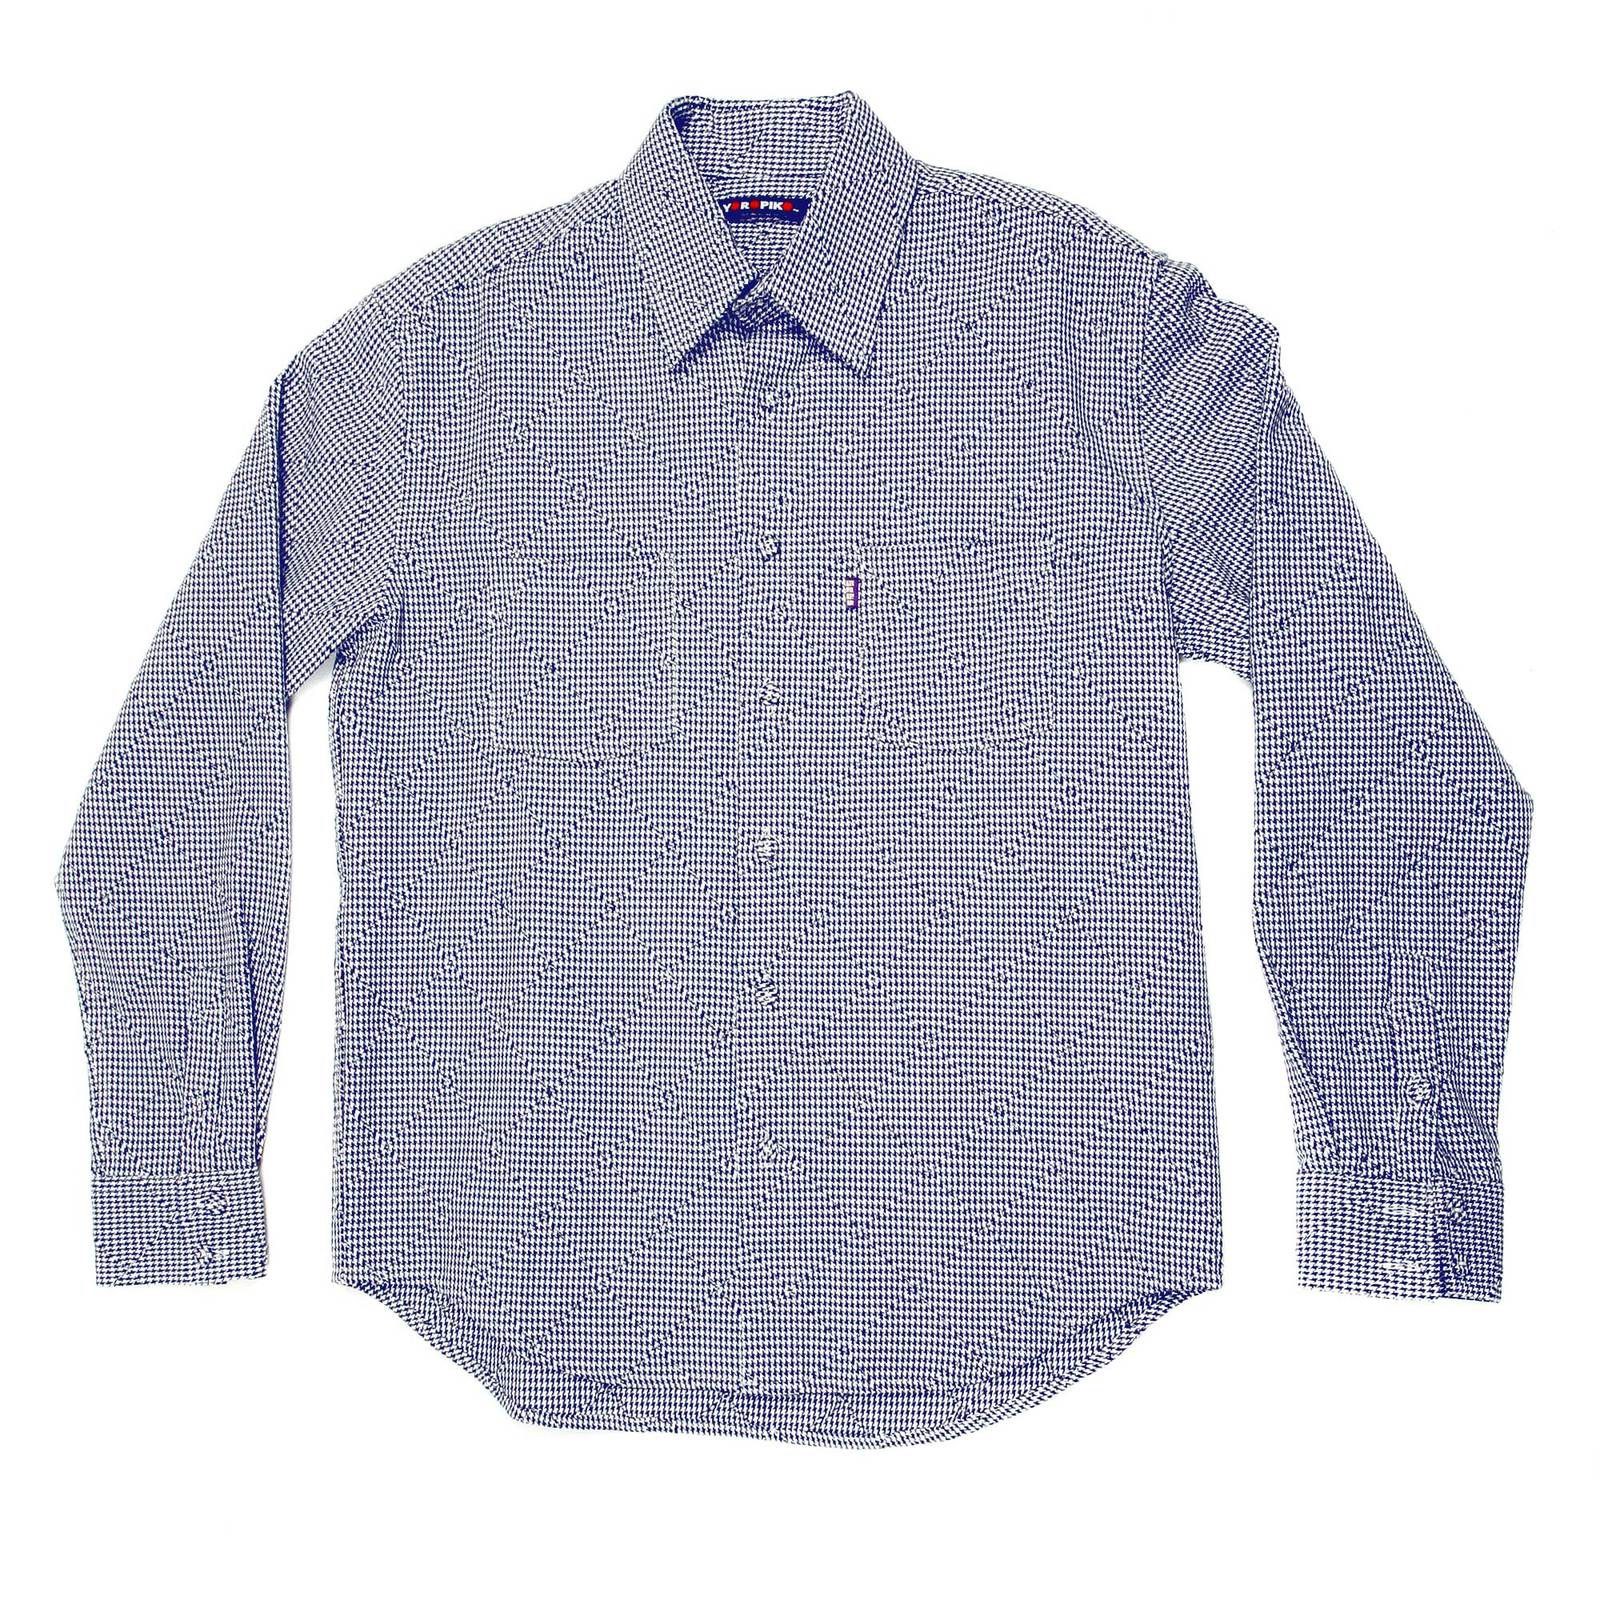 Shop For Yoropiko Long Sleeve Shirt In Navy And White